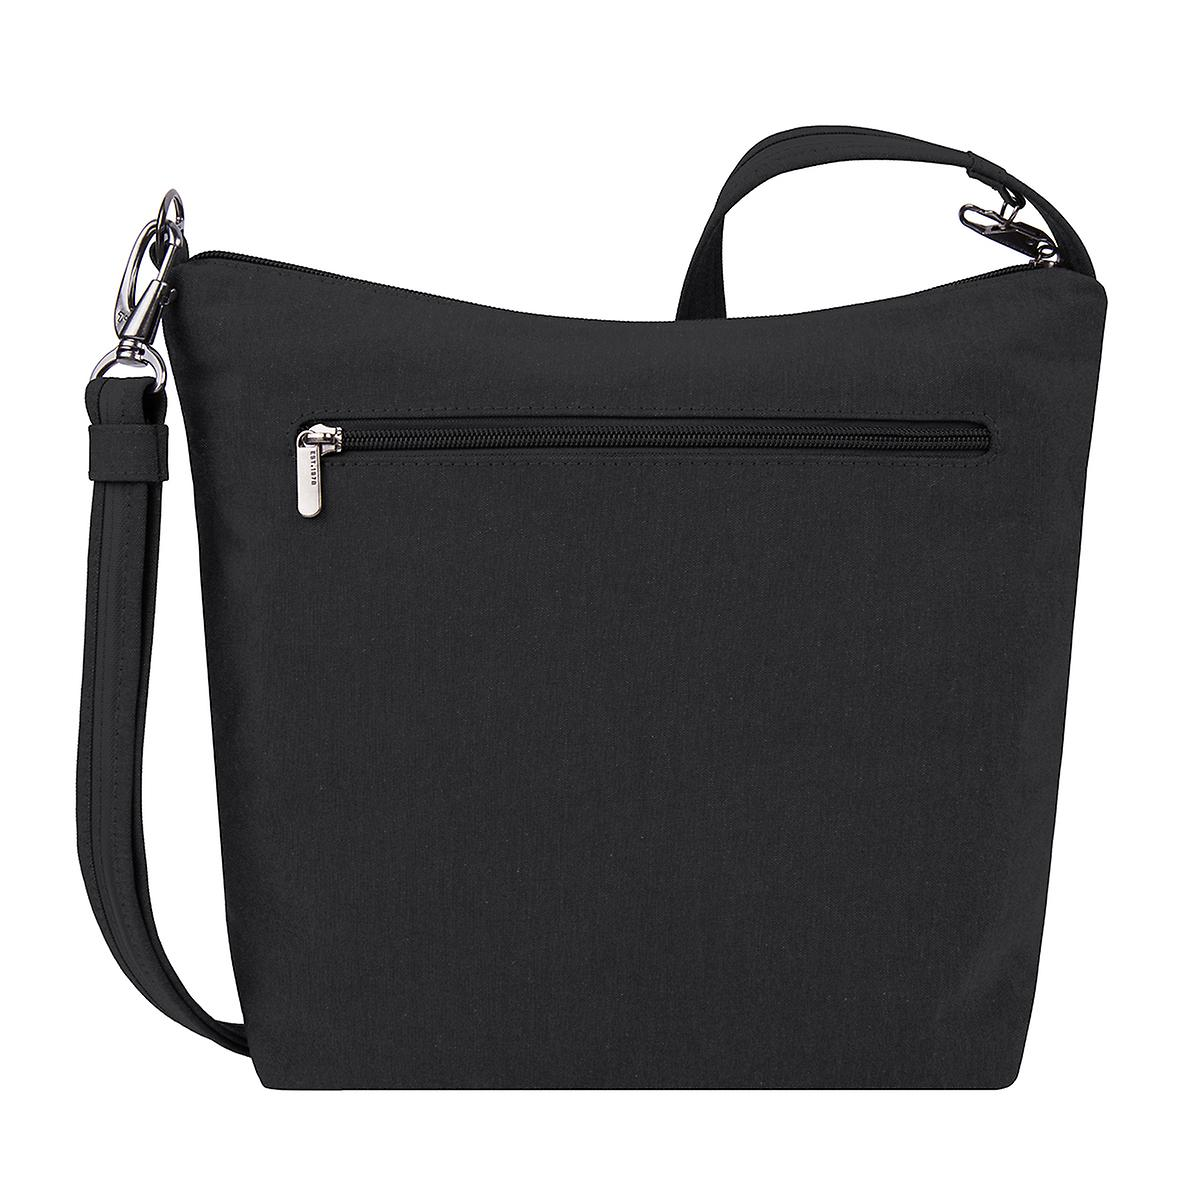 Travelon Black Anti-Theft Metro Crossbody Bag